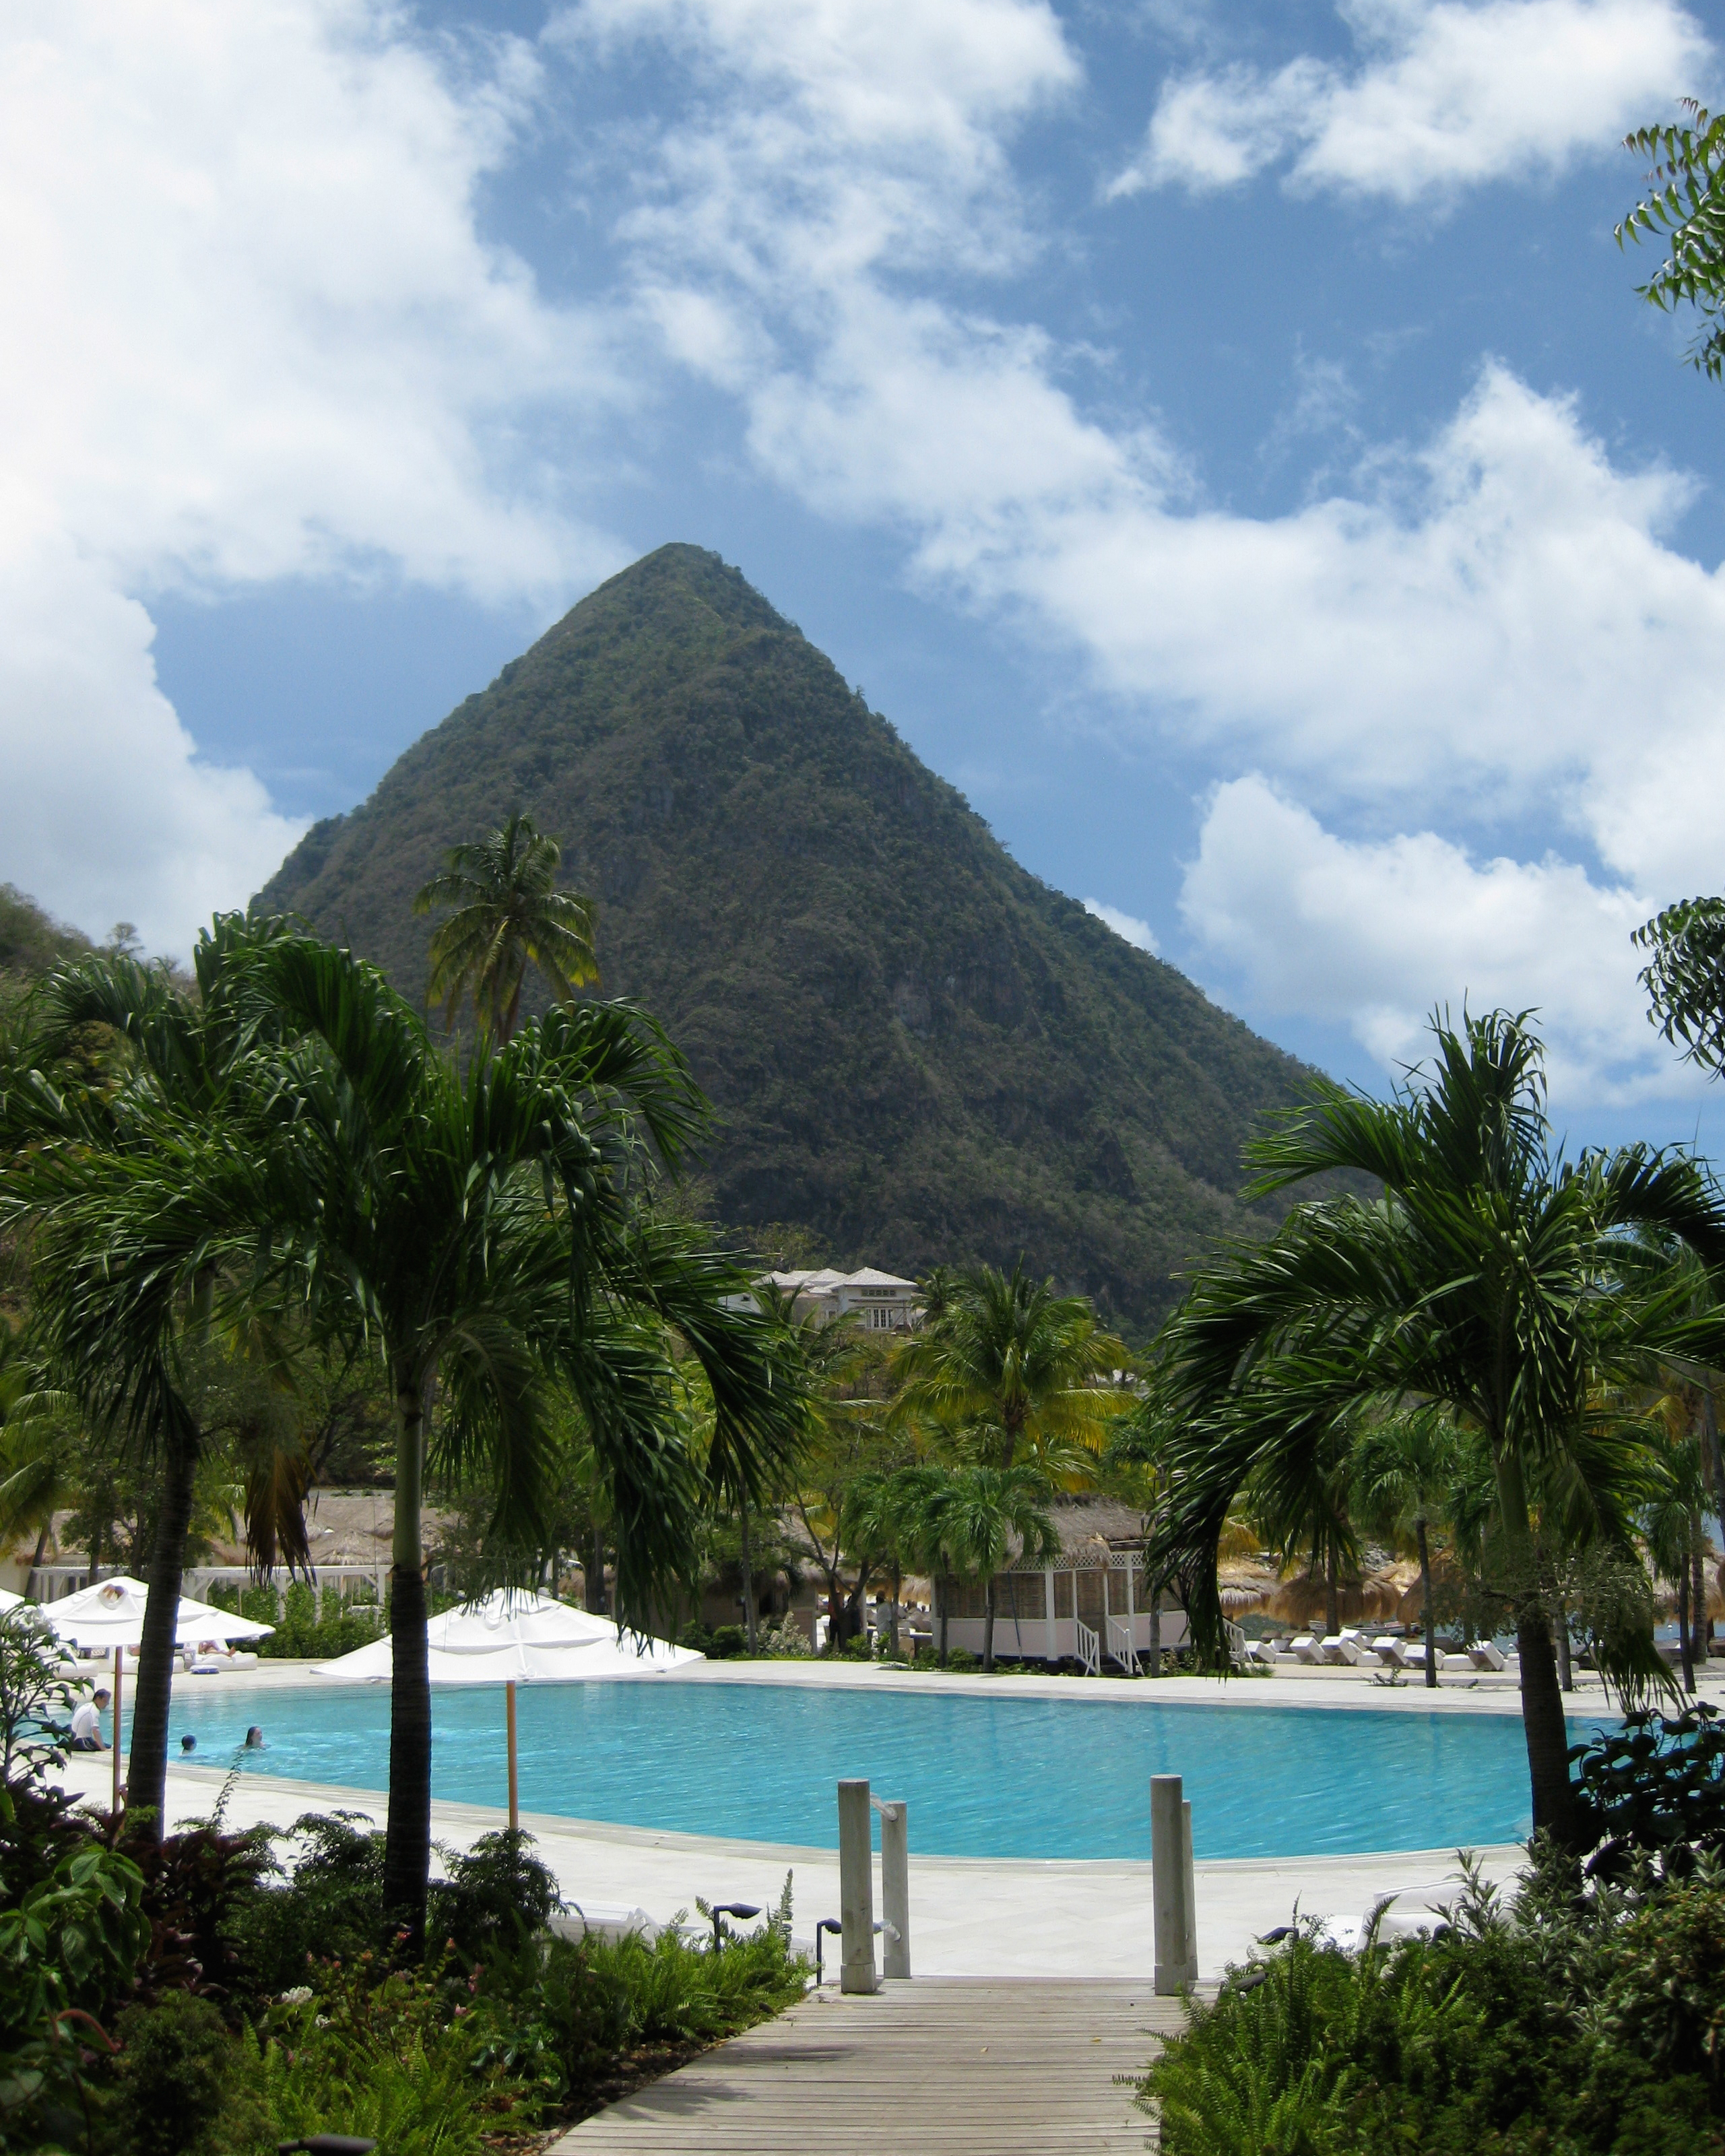 honeymoon-diary-st-lucia-lindsey-scott-wds110664-img-1632-1114.jpg